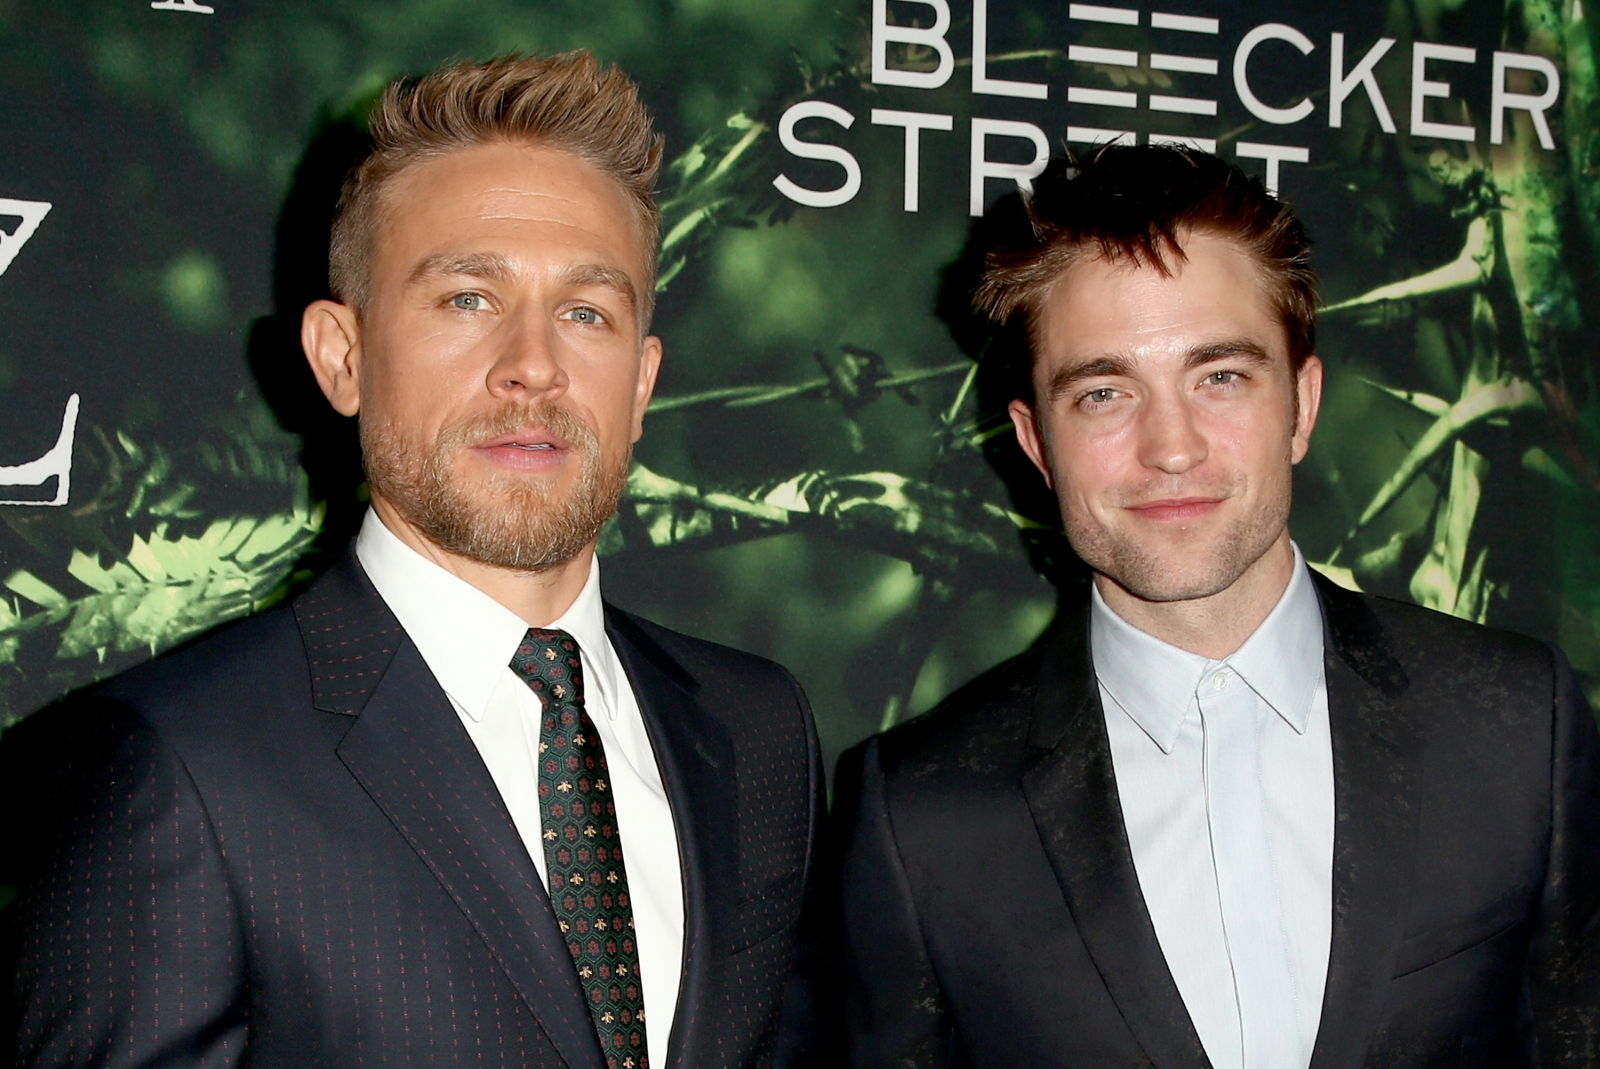 Robert Pattinson and Charlie Hunnam